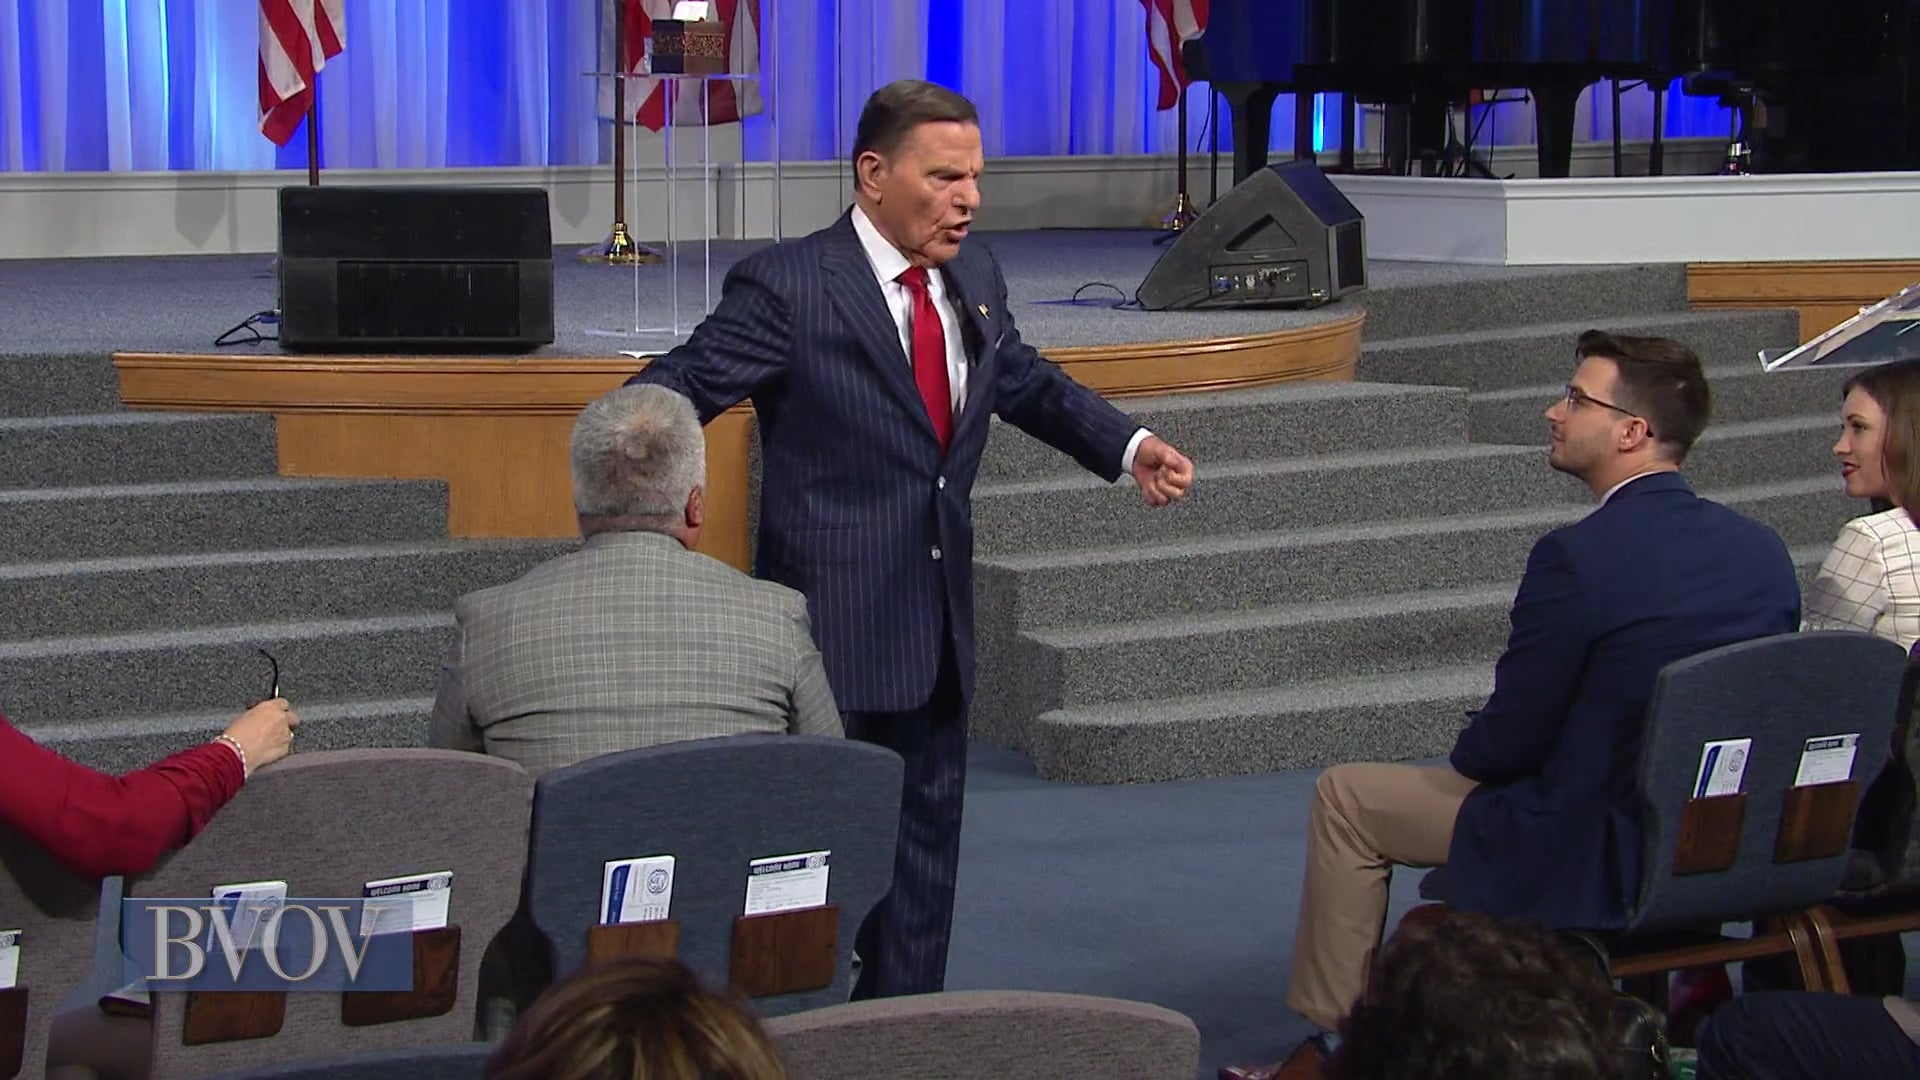 How do you become rooted in the basics of faith? One step at a time! Watch Believer's Voice of Victory as Kenneth Copeland shares personal experiences that were the steppingstones of faith, that led to where he is today. Learn how you, too, can use times of encouragement and discouragement as your steppingstones to victory!